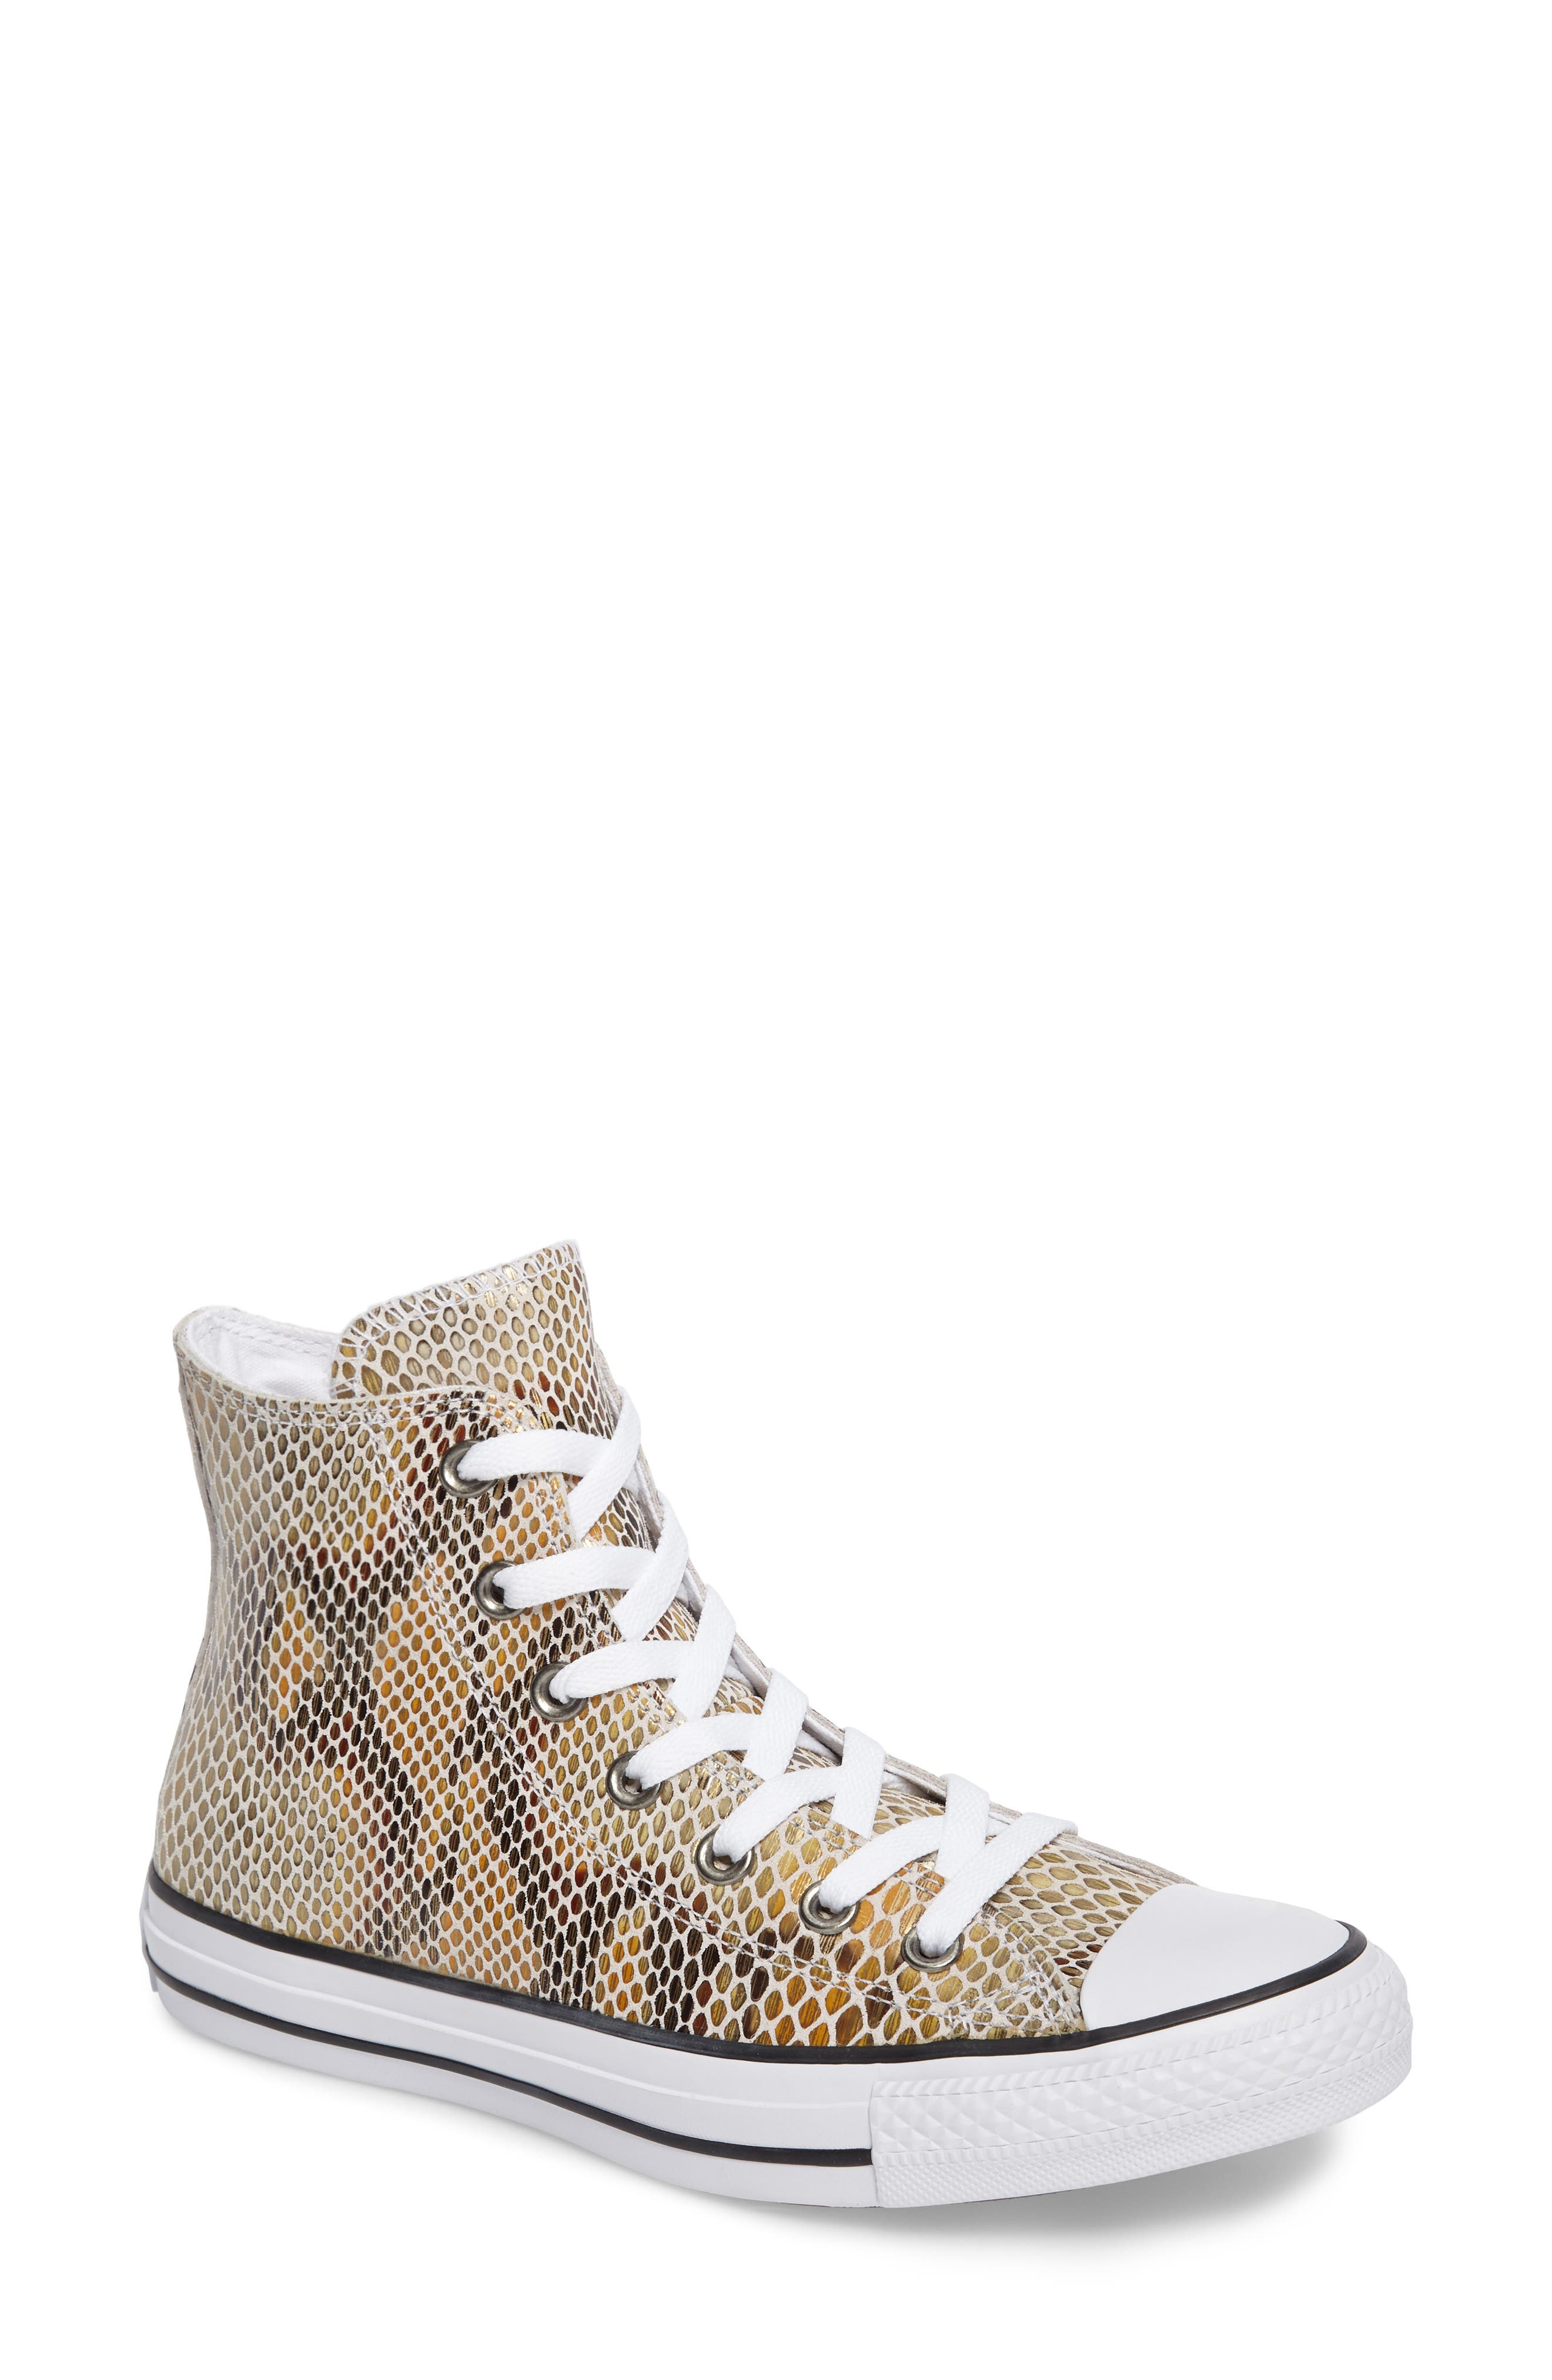 Chuck Taylor<sup>®</sup> All Star<sup>®</sup> Snake Embossed High Top Sneaker,                             Main thumbnail 1, color,                             Clay